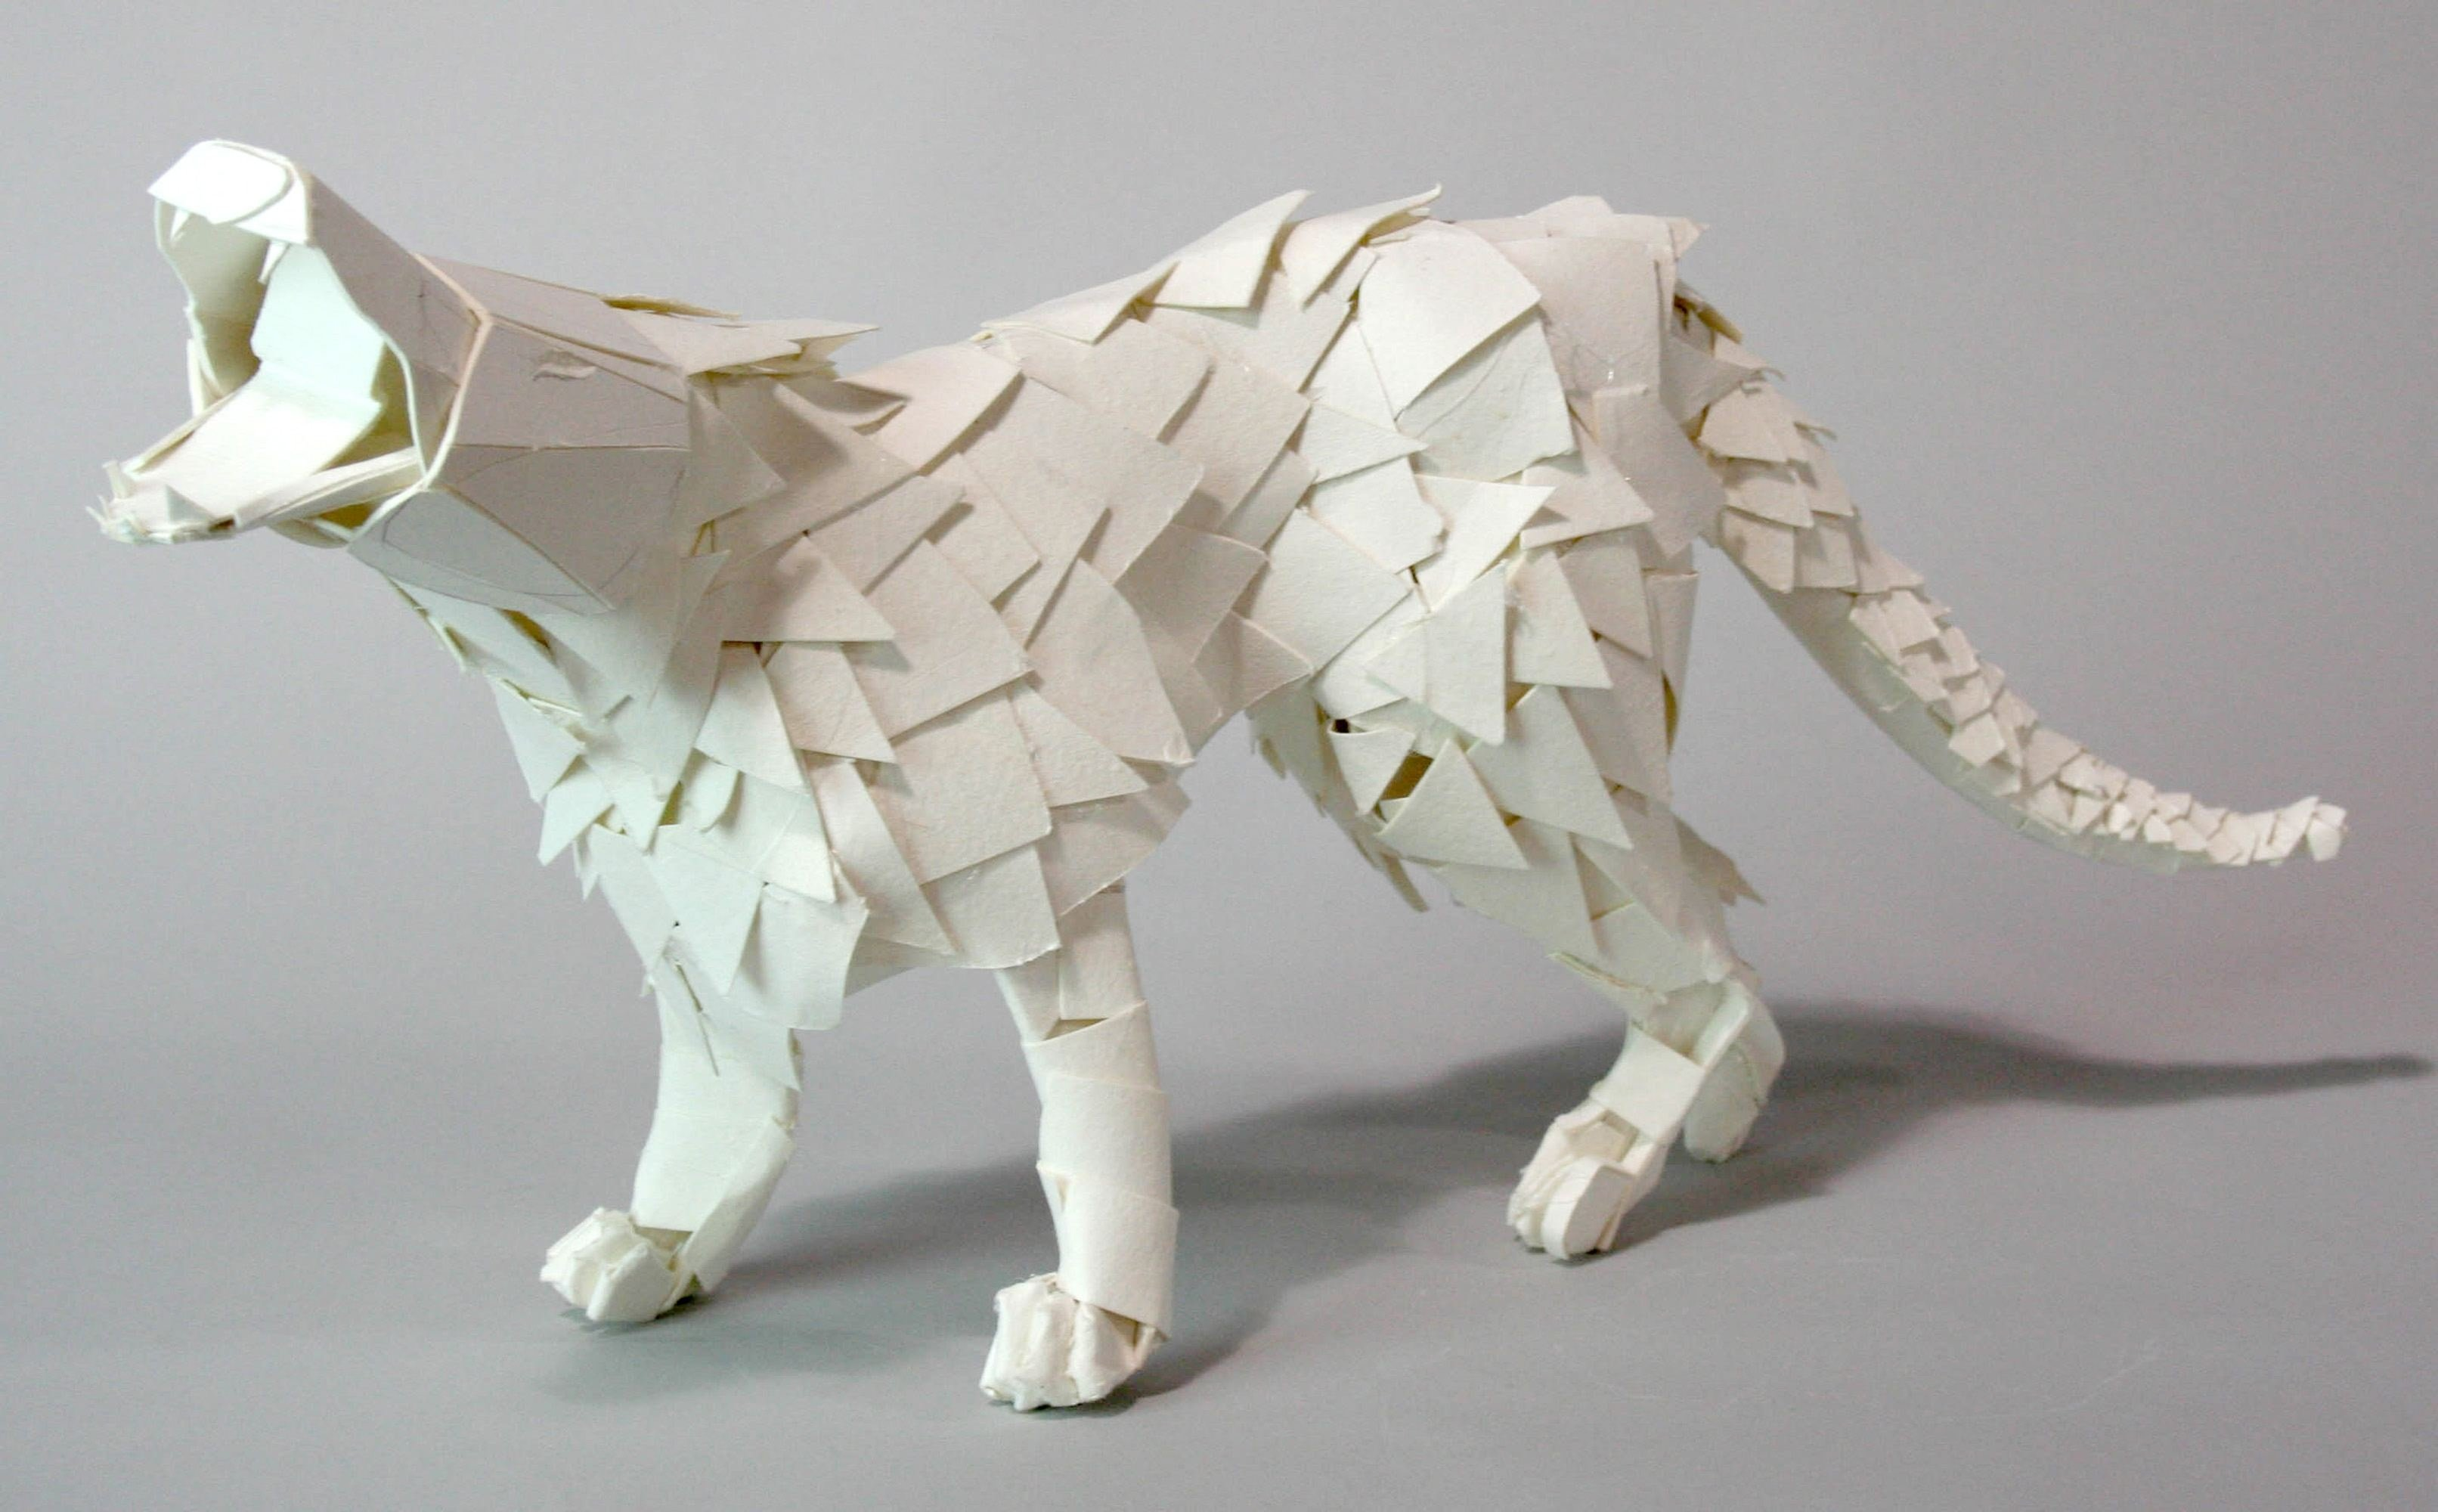 Wolf sculpture made with Taskboard in school art class